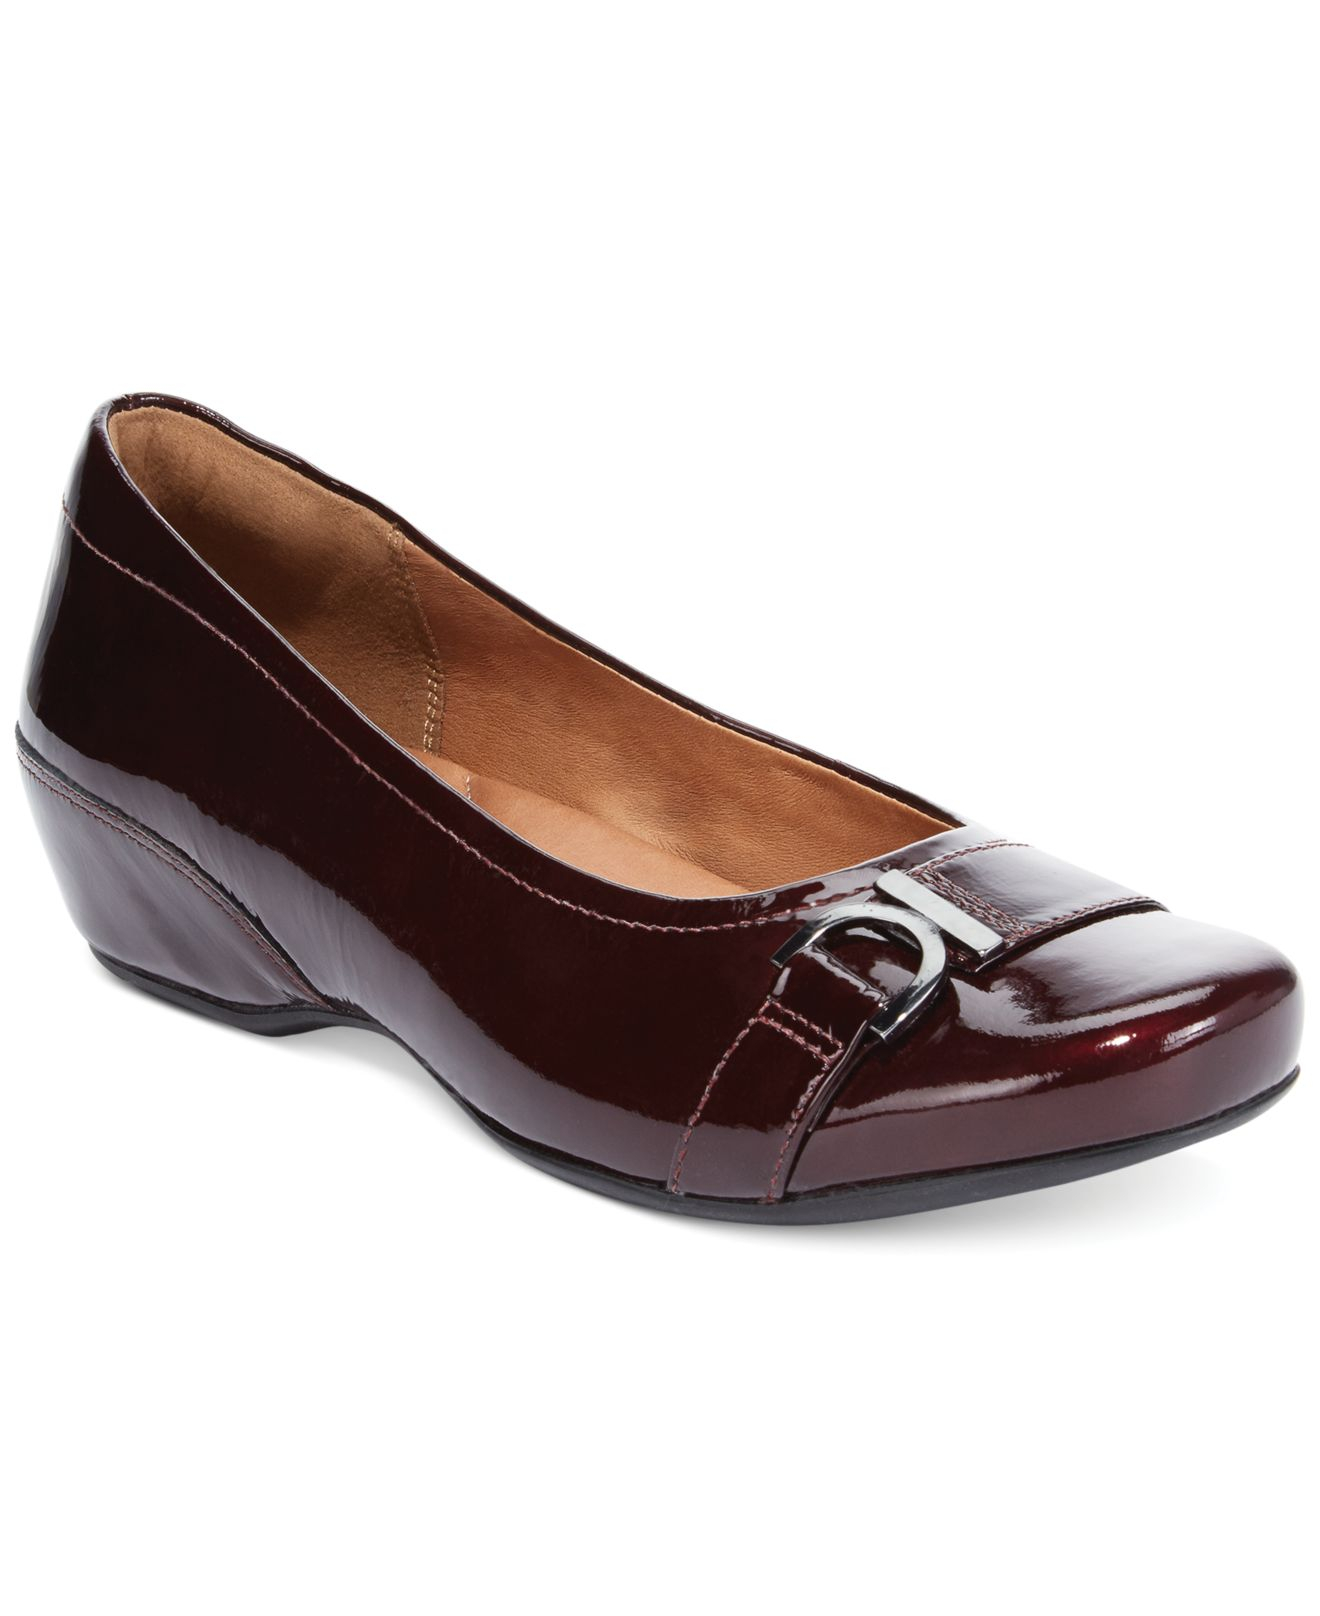 345c9022950 Lyst - Clarks Artisan Women s Concert Band Flats in Purple